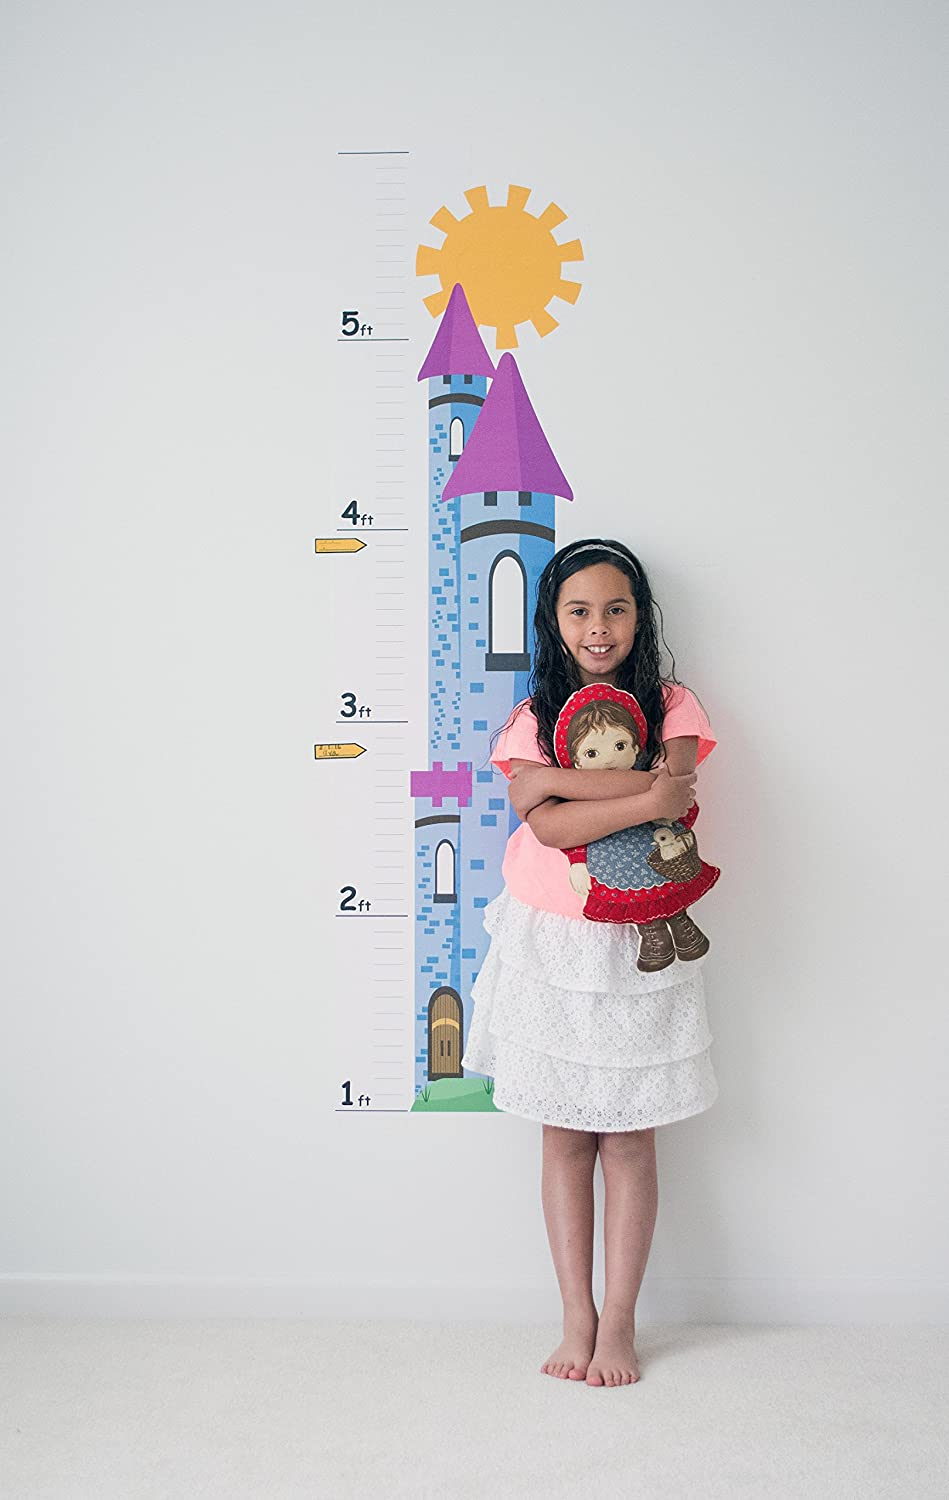 Growth Chart For Kids - Castle Growth Chart Decal - Height Chart For Kids Vinyl Decal - Castle Nursery Wall Decor - Height Measurement For Kids - Kids Height Wall Chart